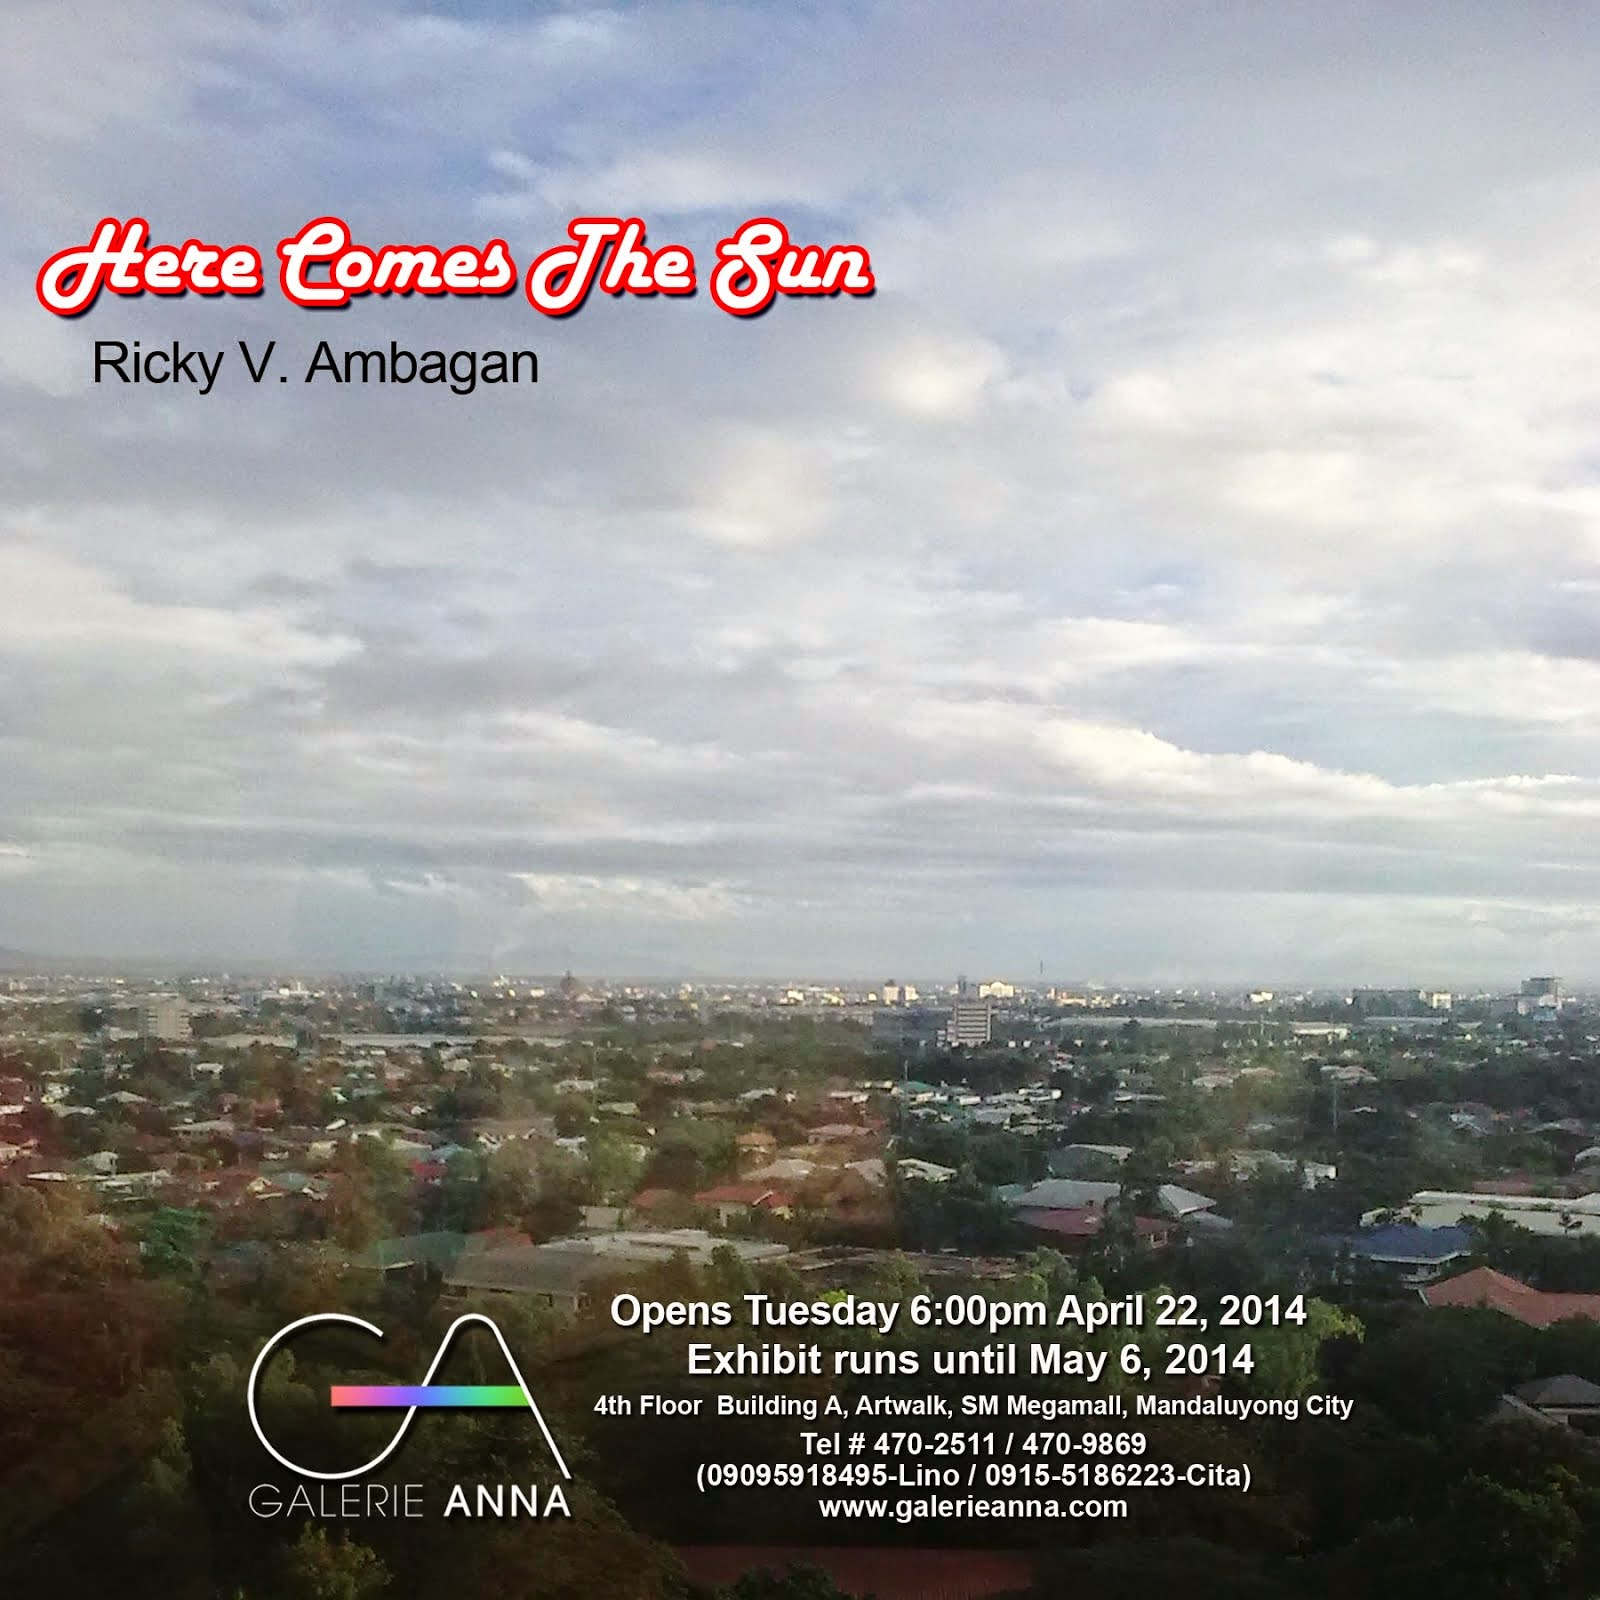 Here Comes The Sun: 5th Solo Exhibition by Ricky Ambagan